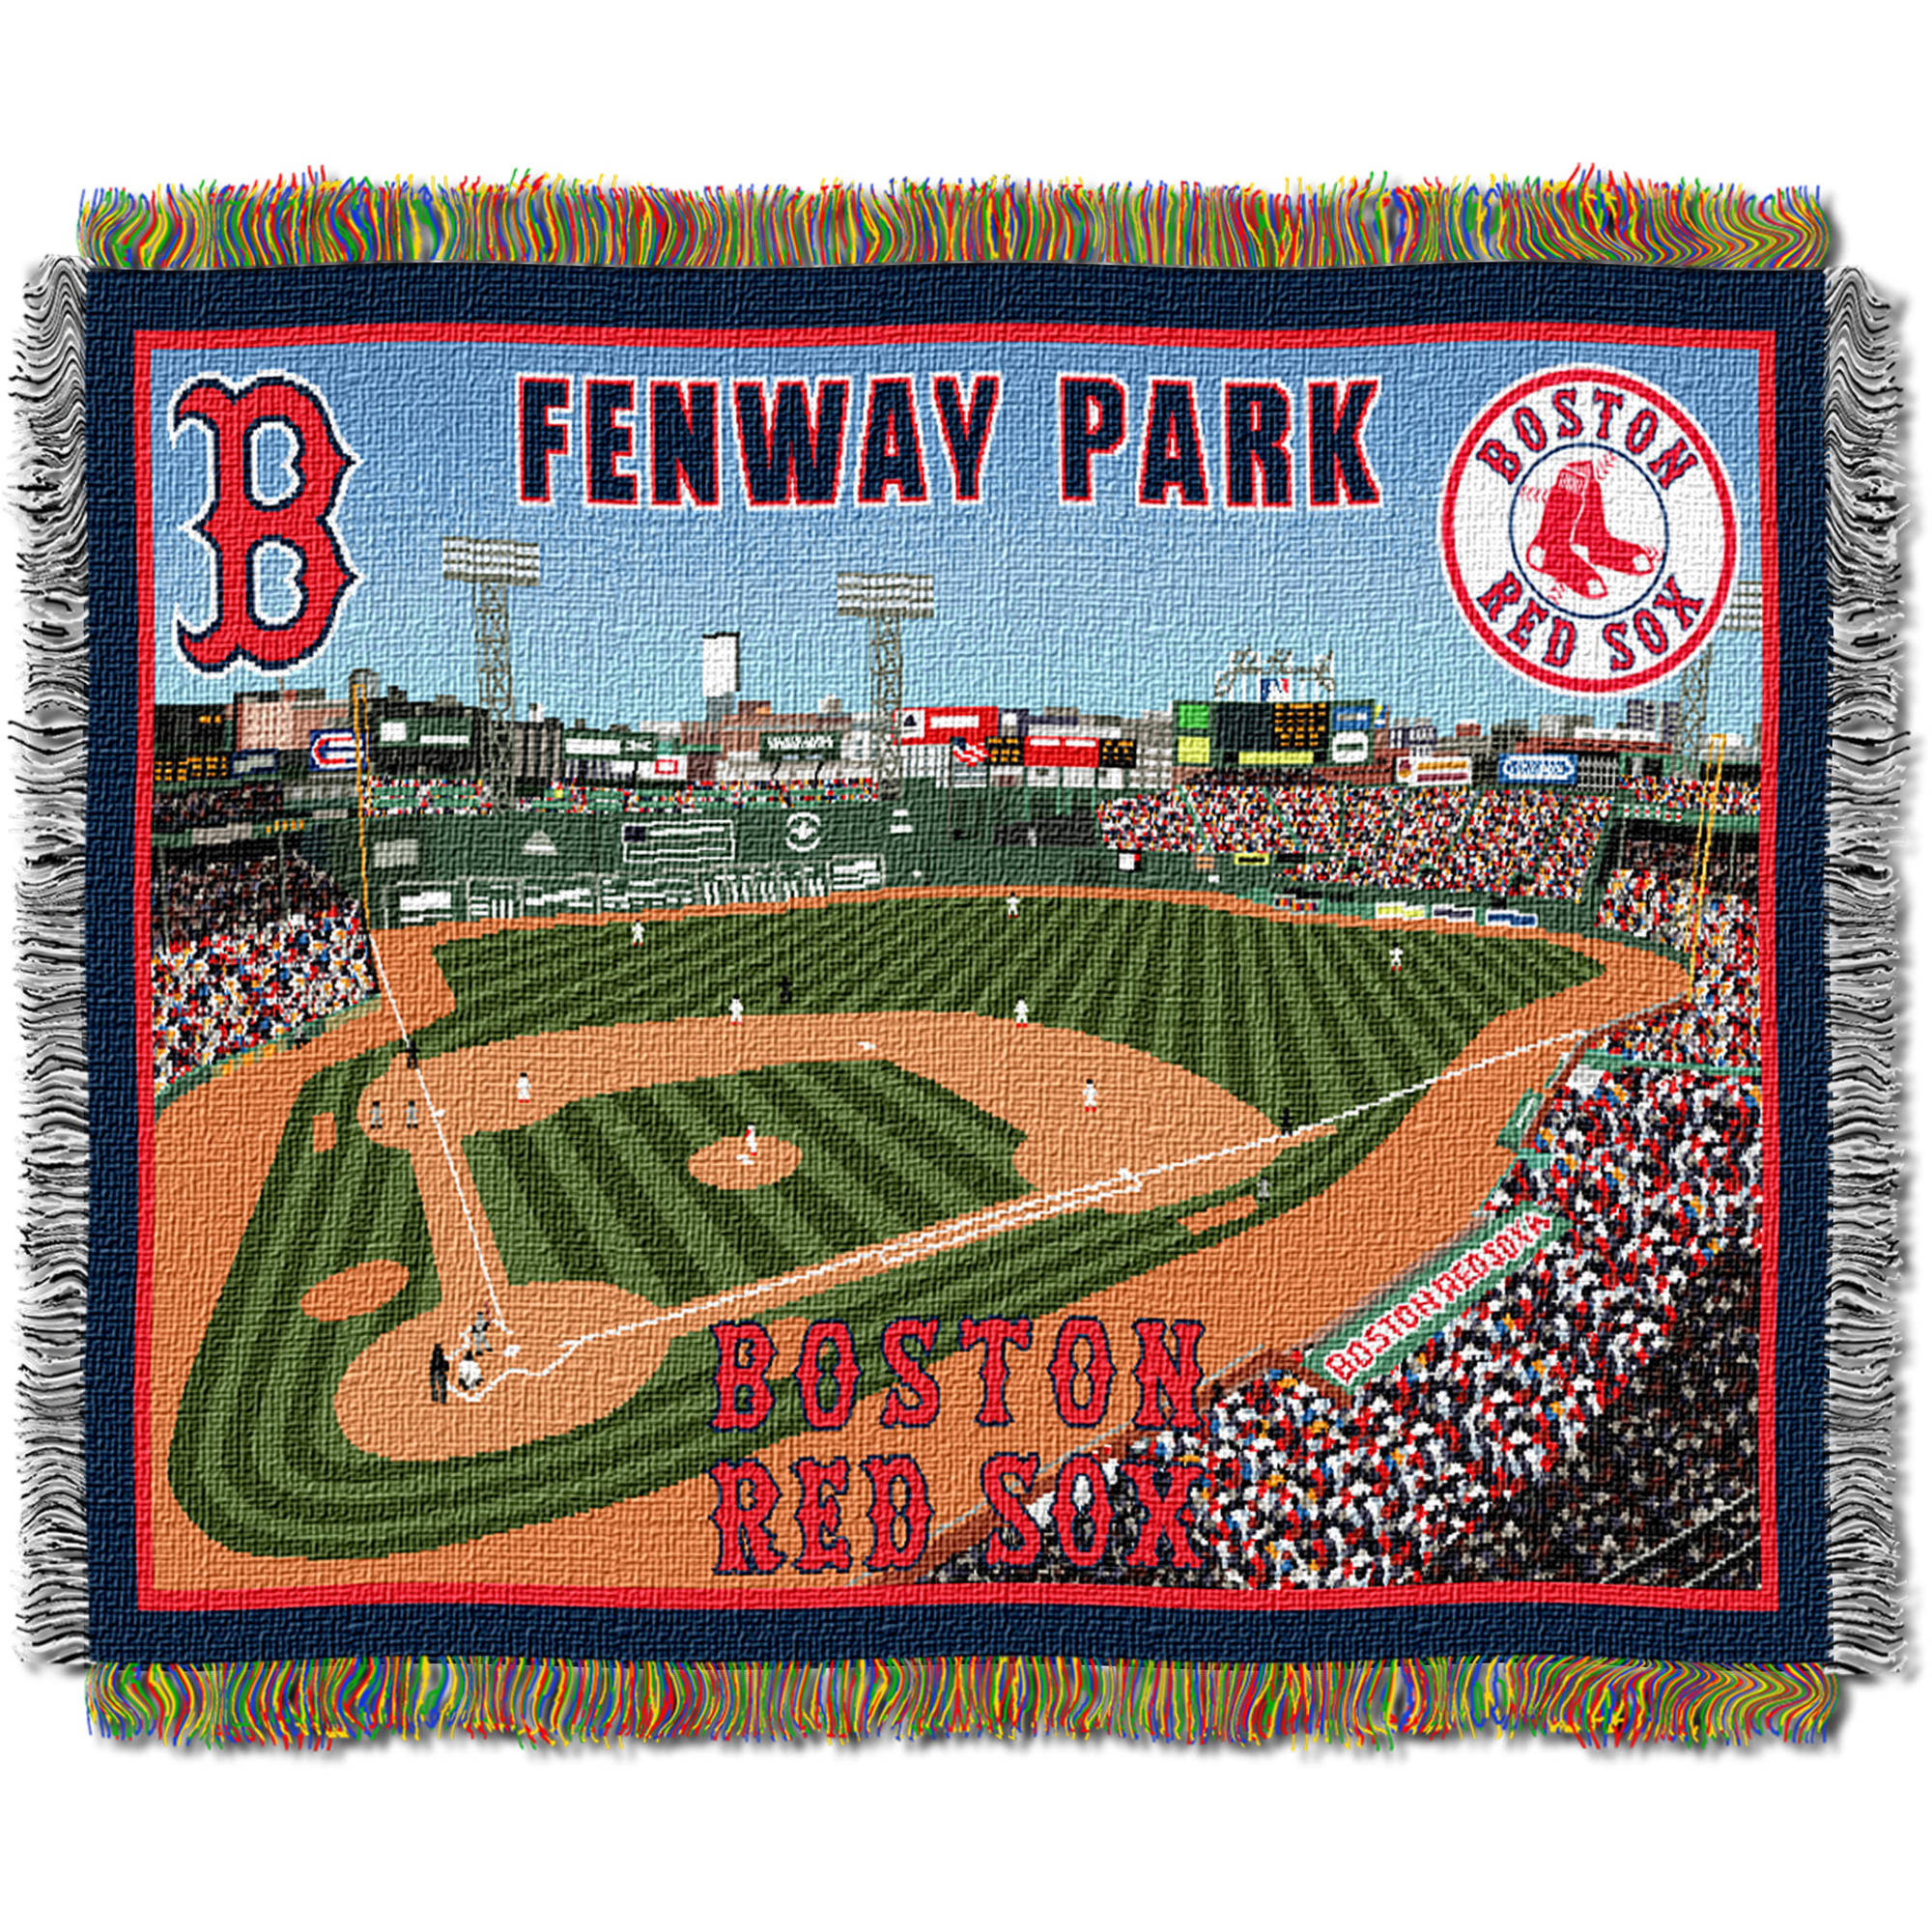 "MLB 48"" x 60"" Stadium Series Tapestry Throw, Boston Red Sox Fenway Park"